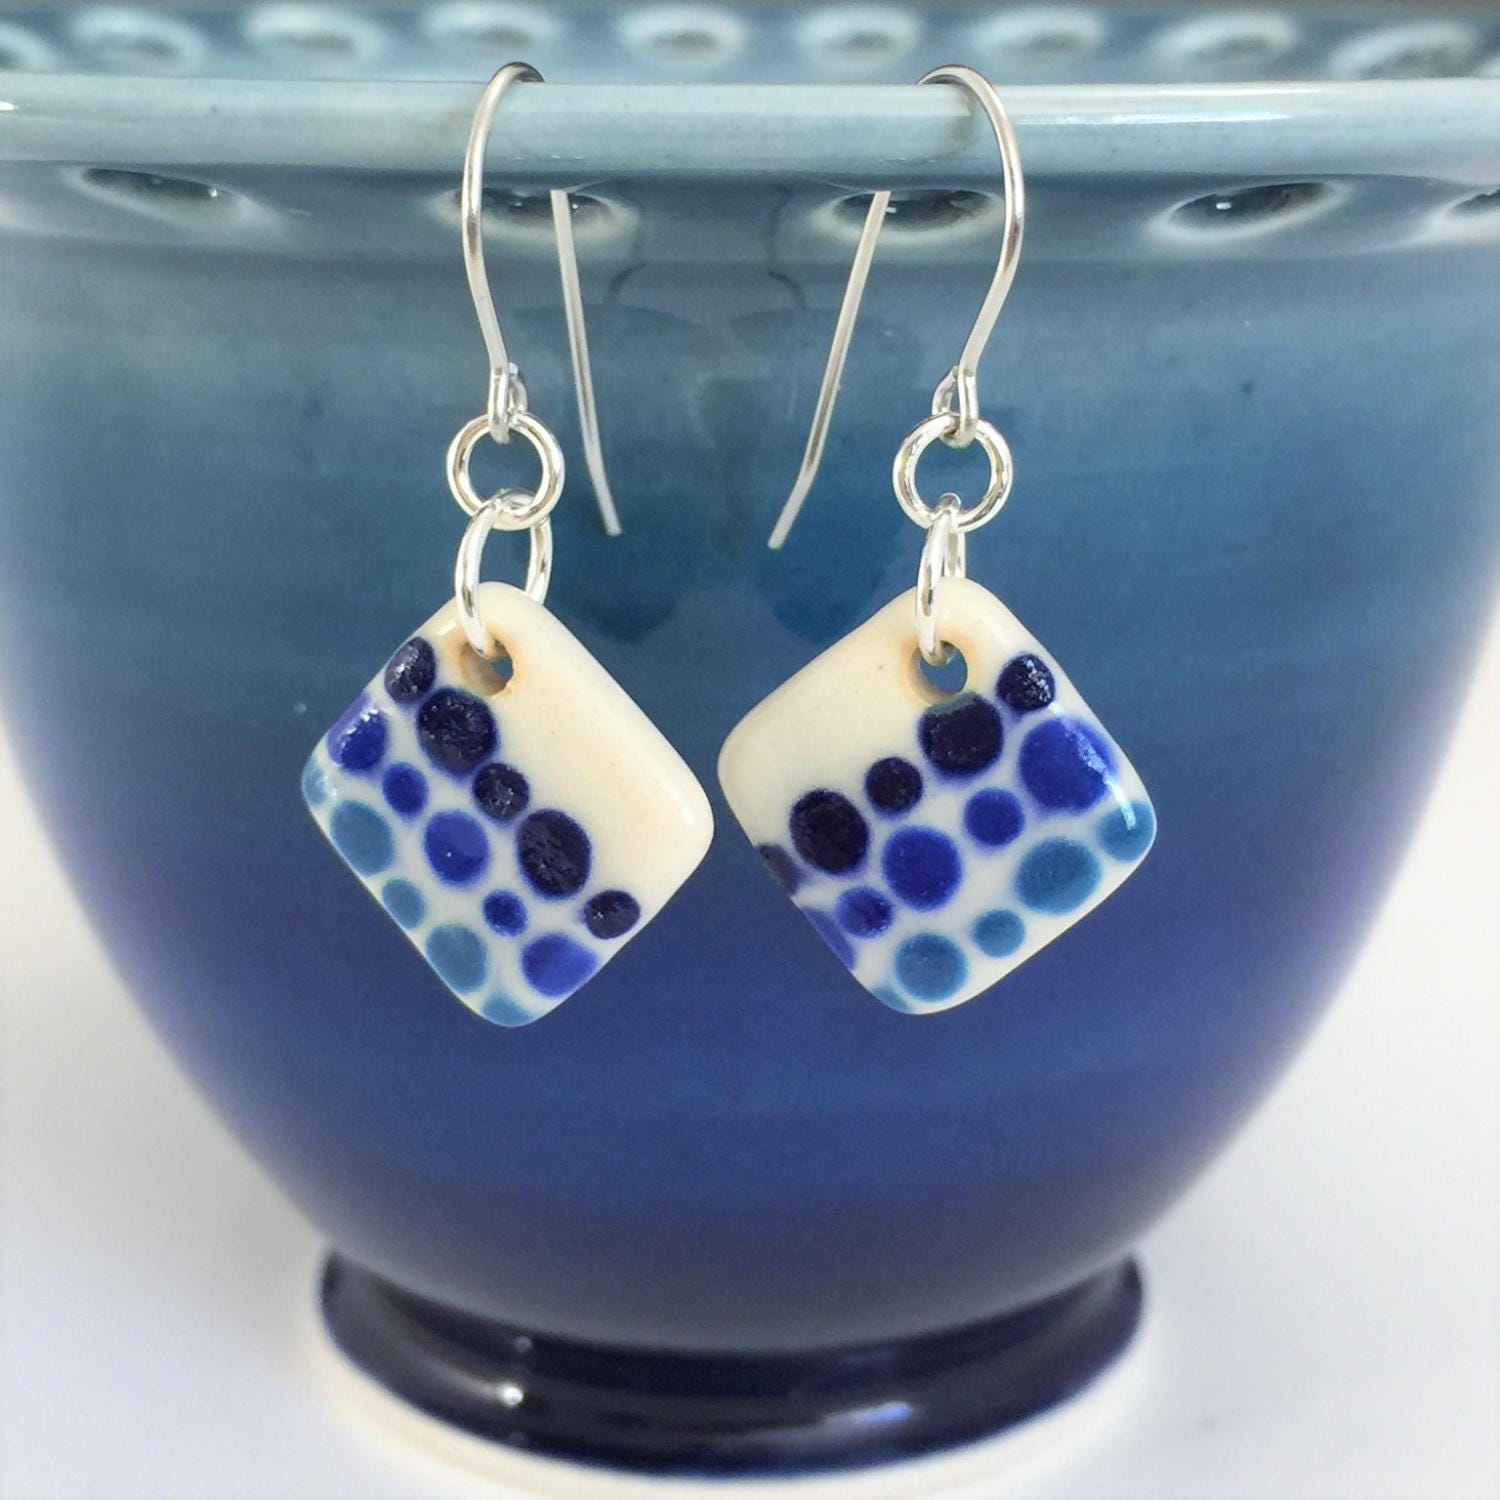 Small Blue Earrings: Small Drop Earrings Blue Earrings Handmade Ceramic Earrings